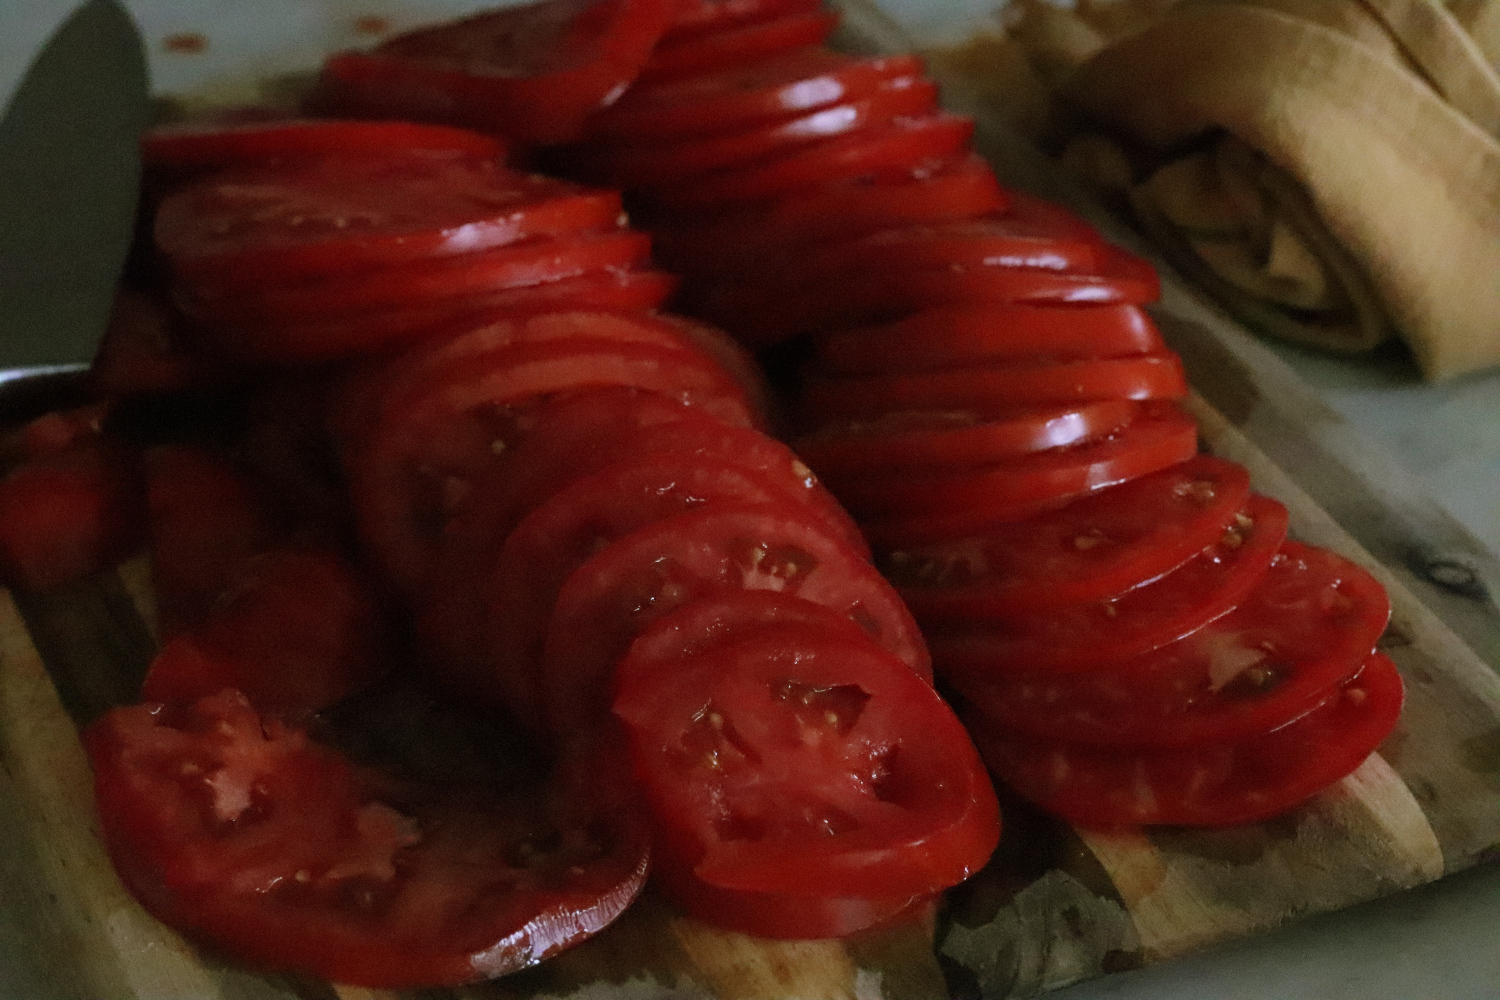 How To Dehydrate Tomatoes How To Store Dehydrated Tomatoes Use Dehydrated Tomatoes in Recipes